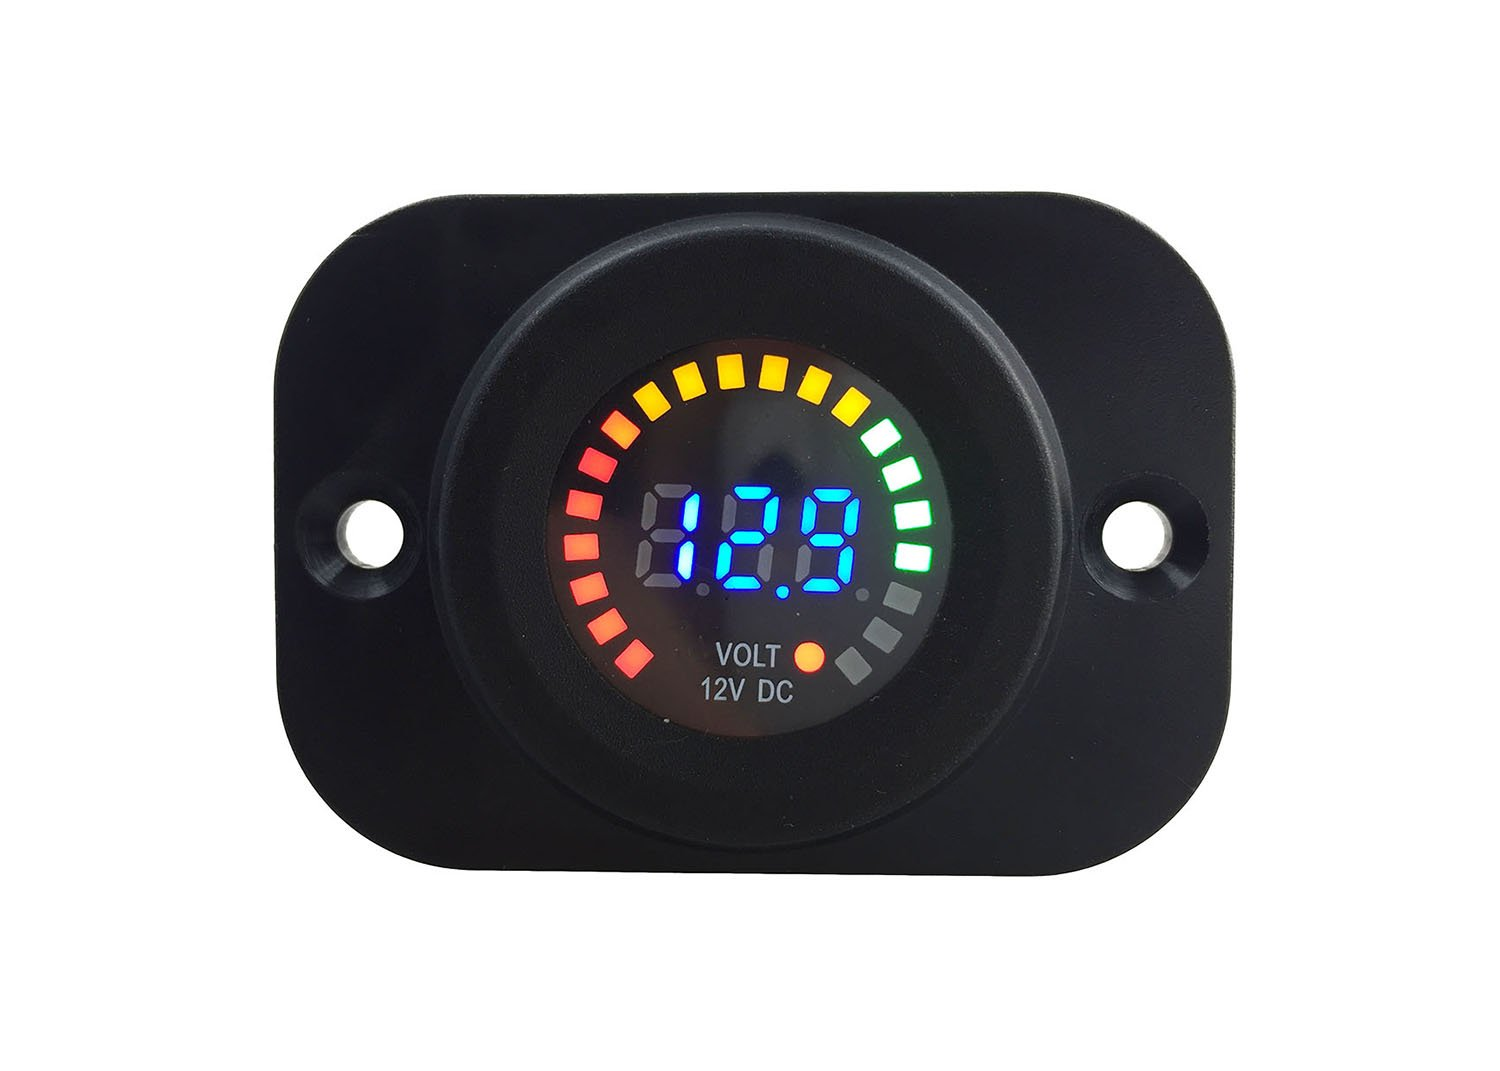 IZTOSS DC 12V Car Motorcycle Waterproof Blue LED Digital Display Voltmeter panel Voltage Gauge with installation kits by IZTOSS